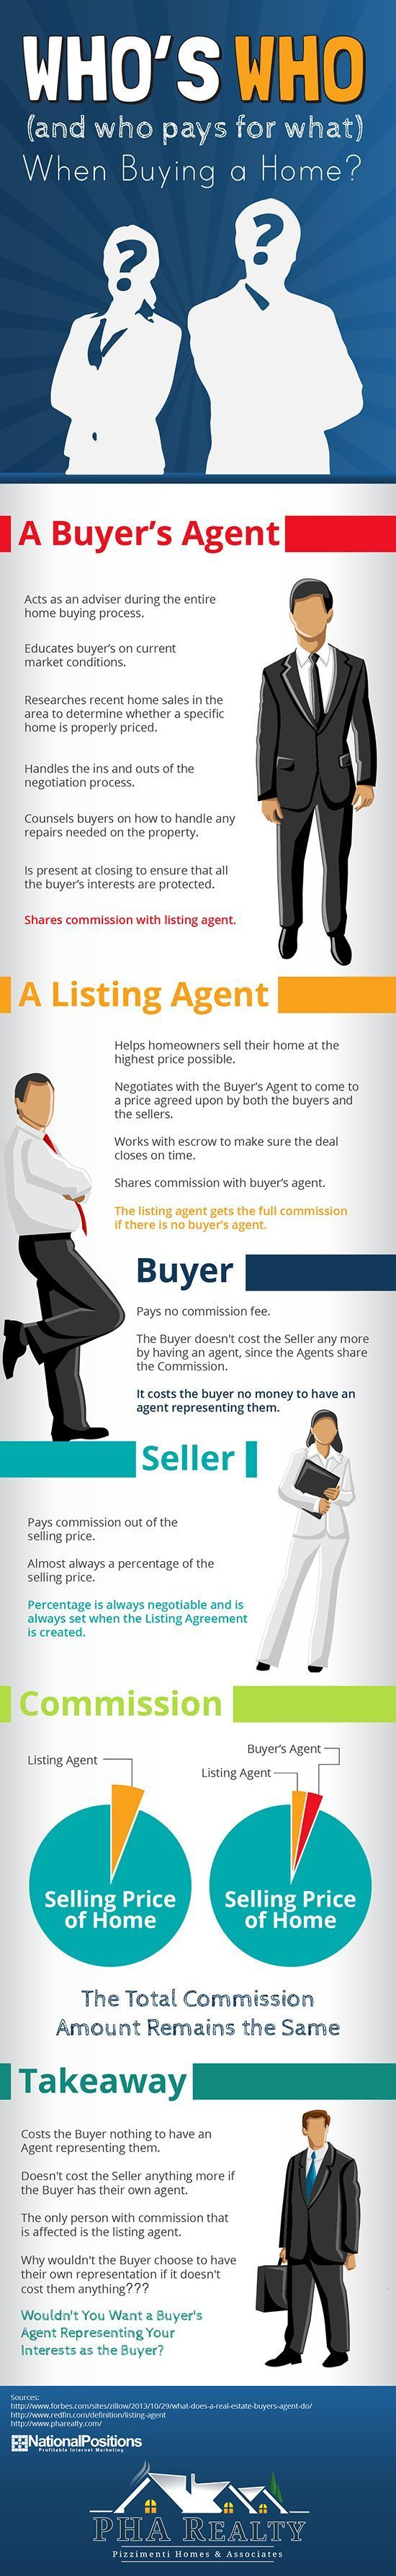 best ideas about real estate flyers real estate who s who in real estate and who pays for what call us at